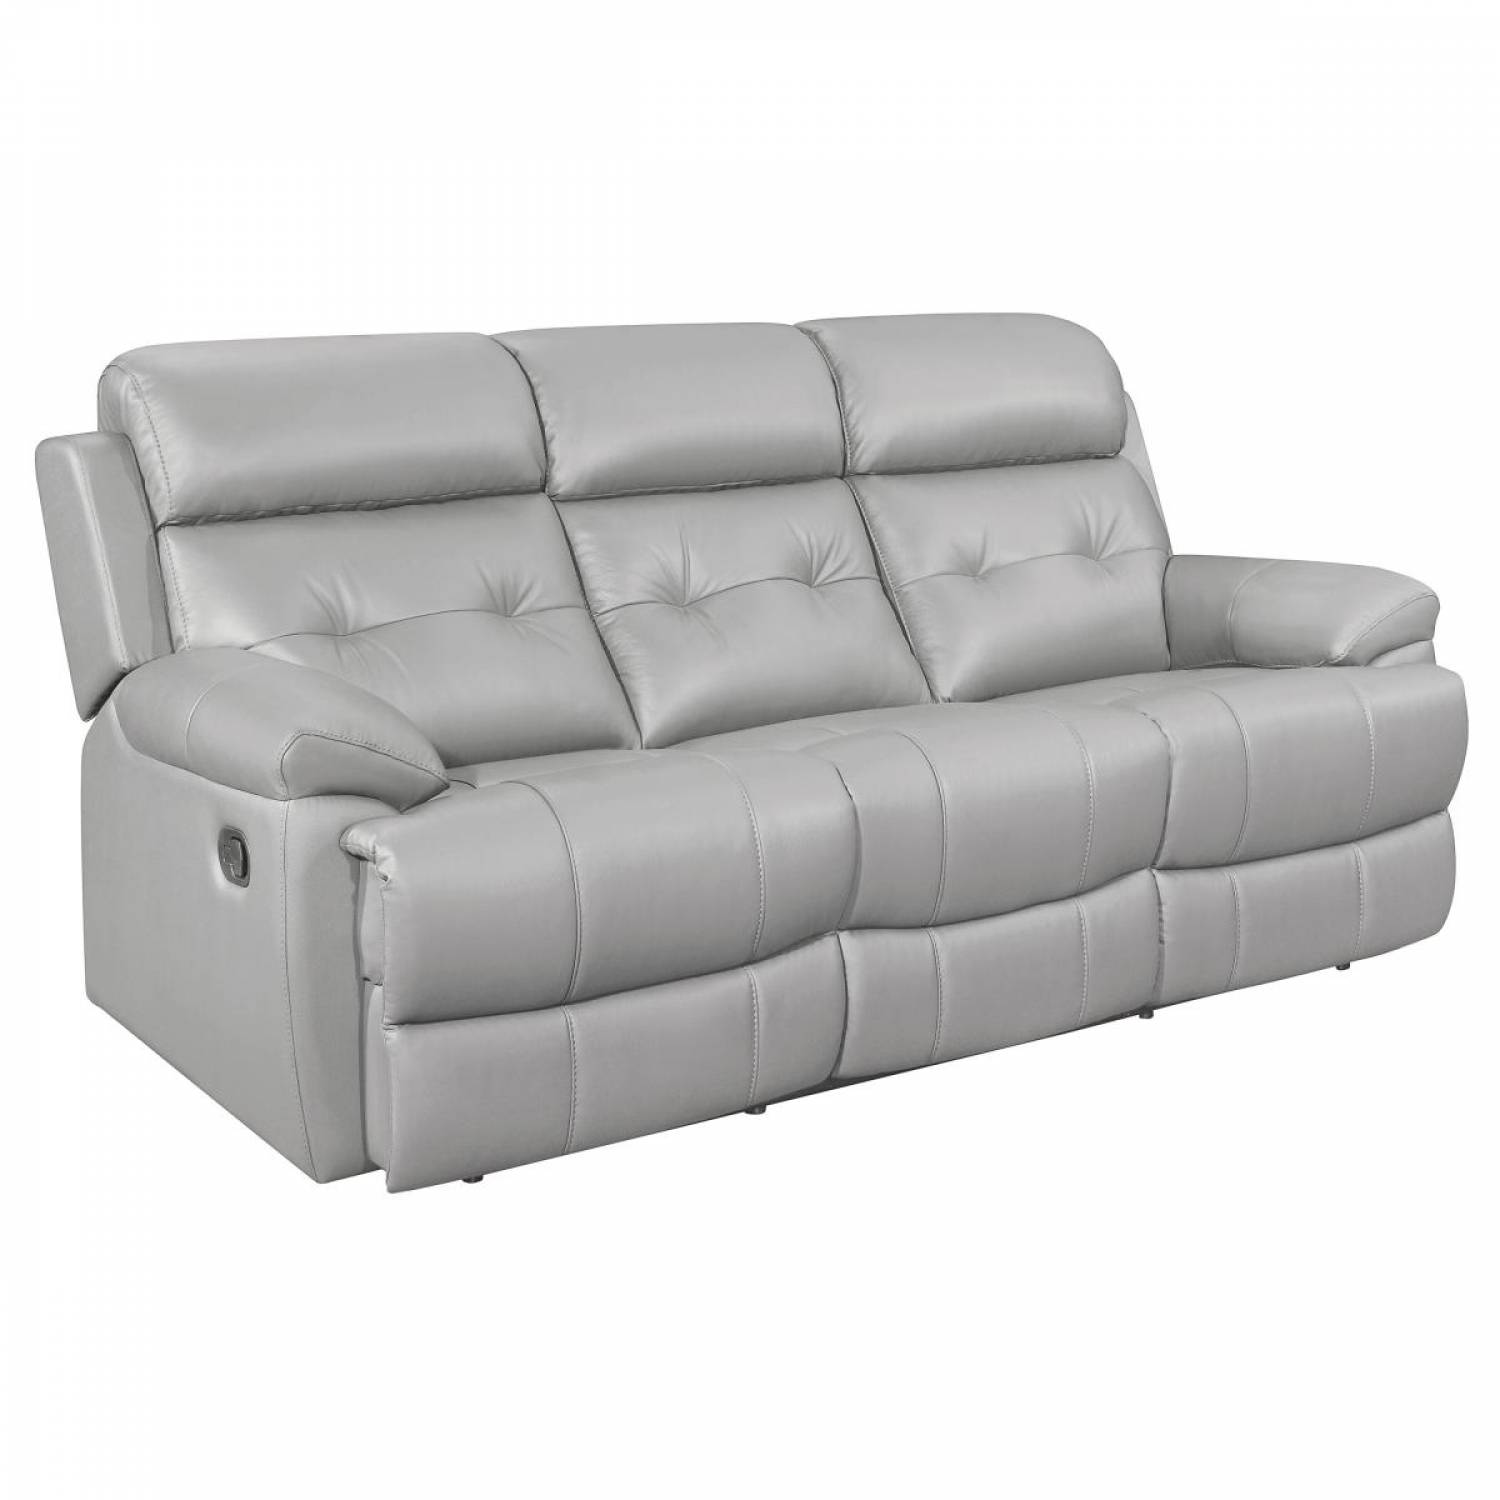 9529sve 3 Double Reclining Sofa Lambent